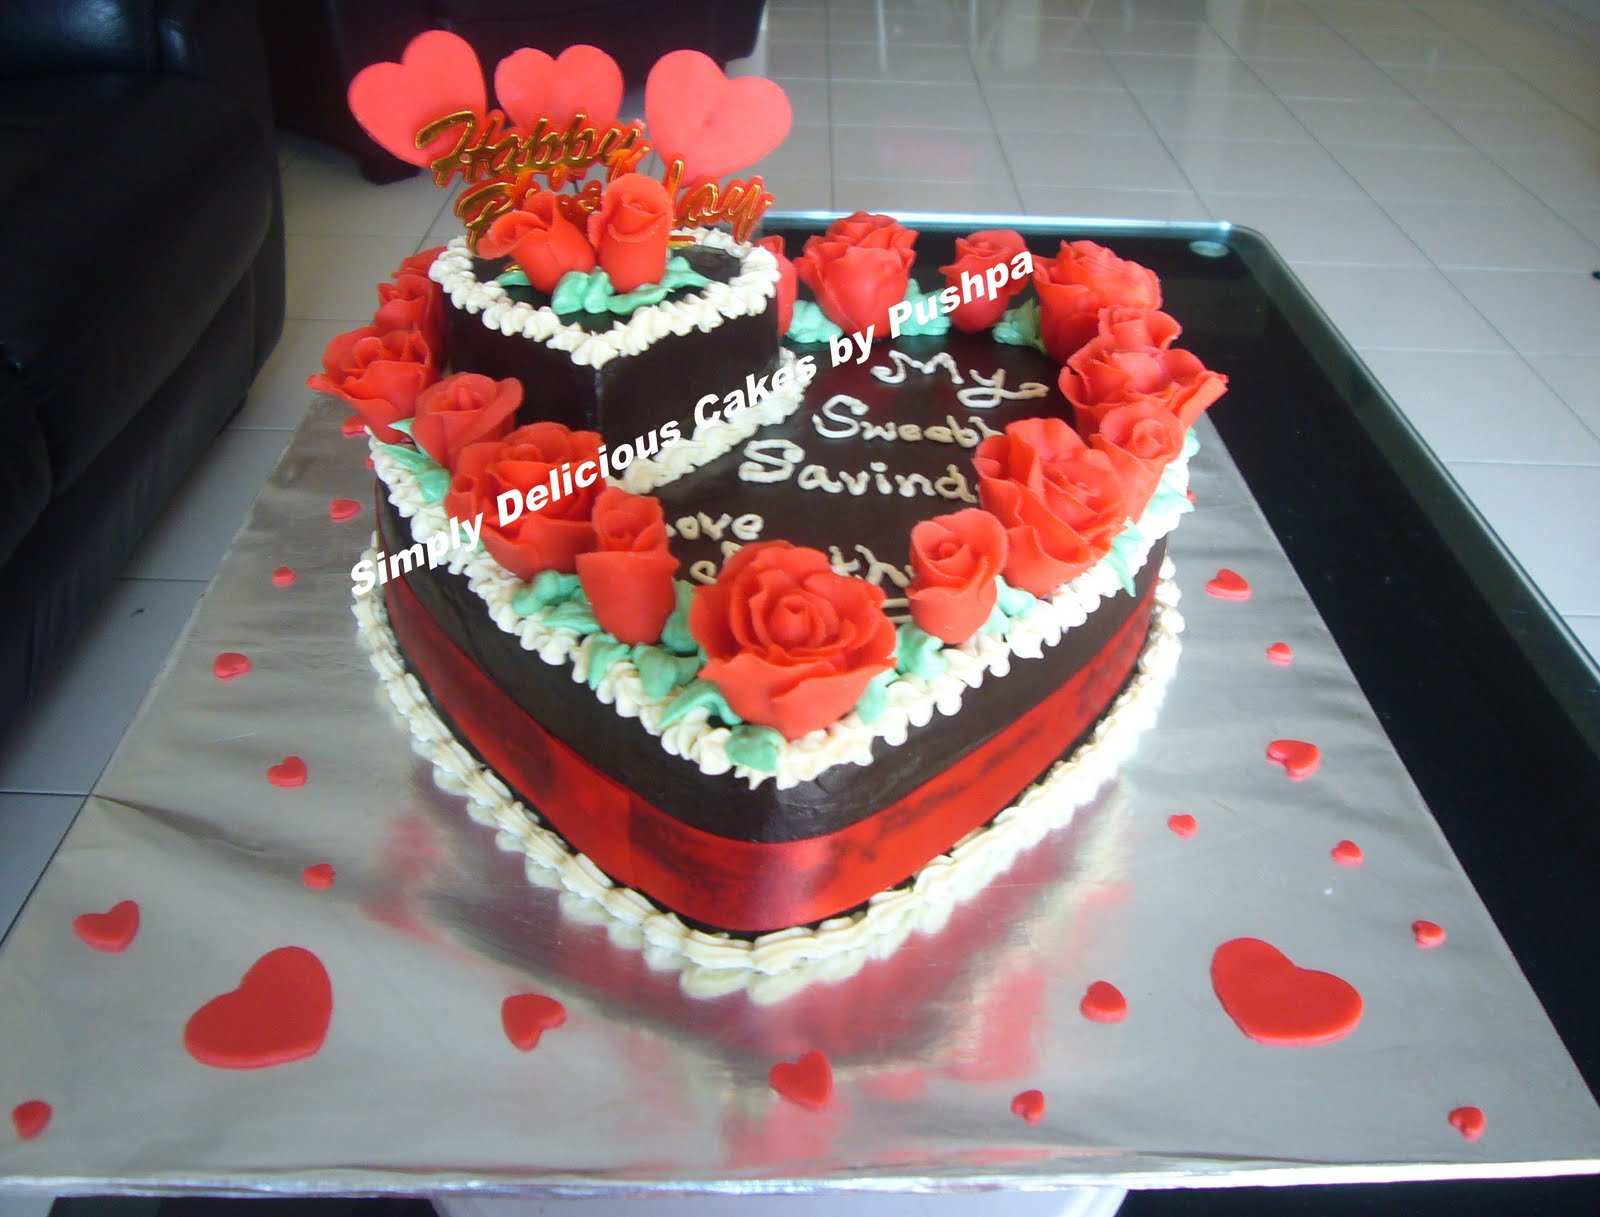 Birthday Cakes For Your Boyfriend ~ Simply delicious cakes chocolate hear with red roses